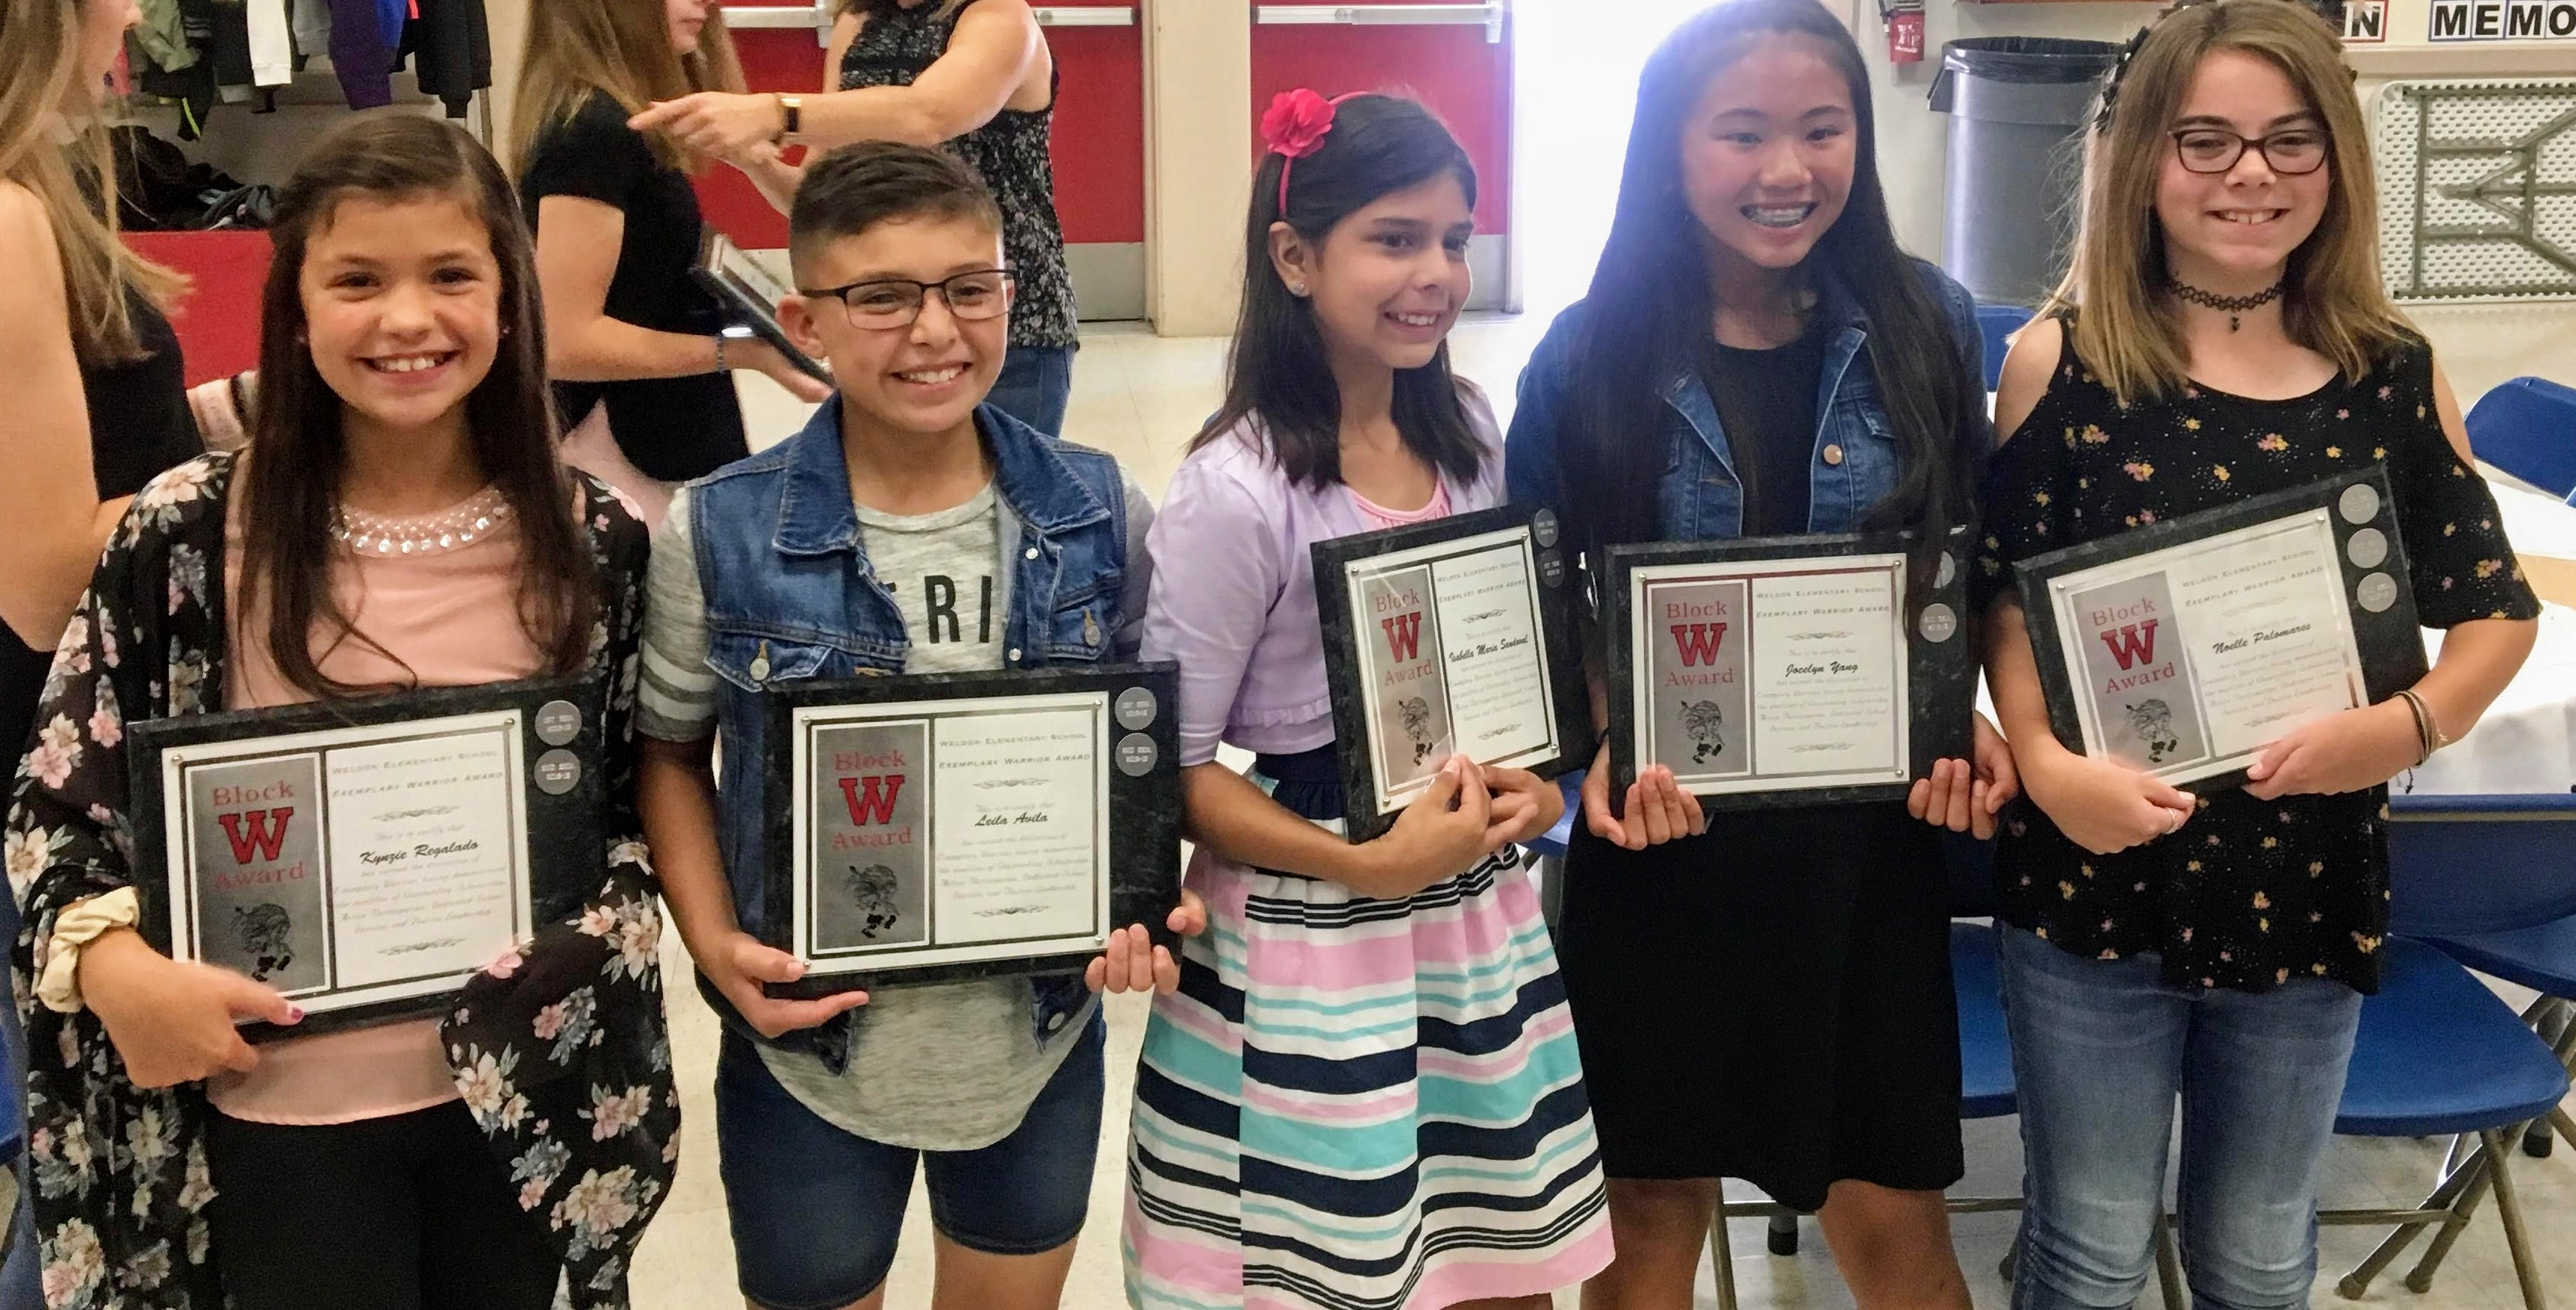 Students with Block W Award